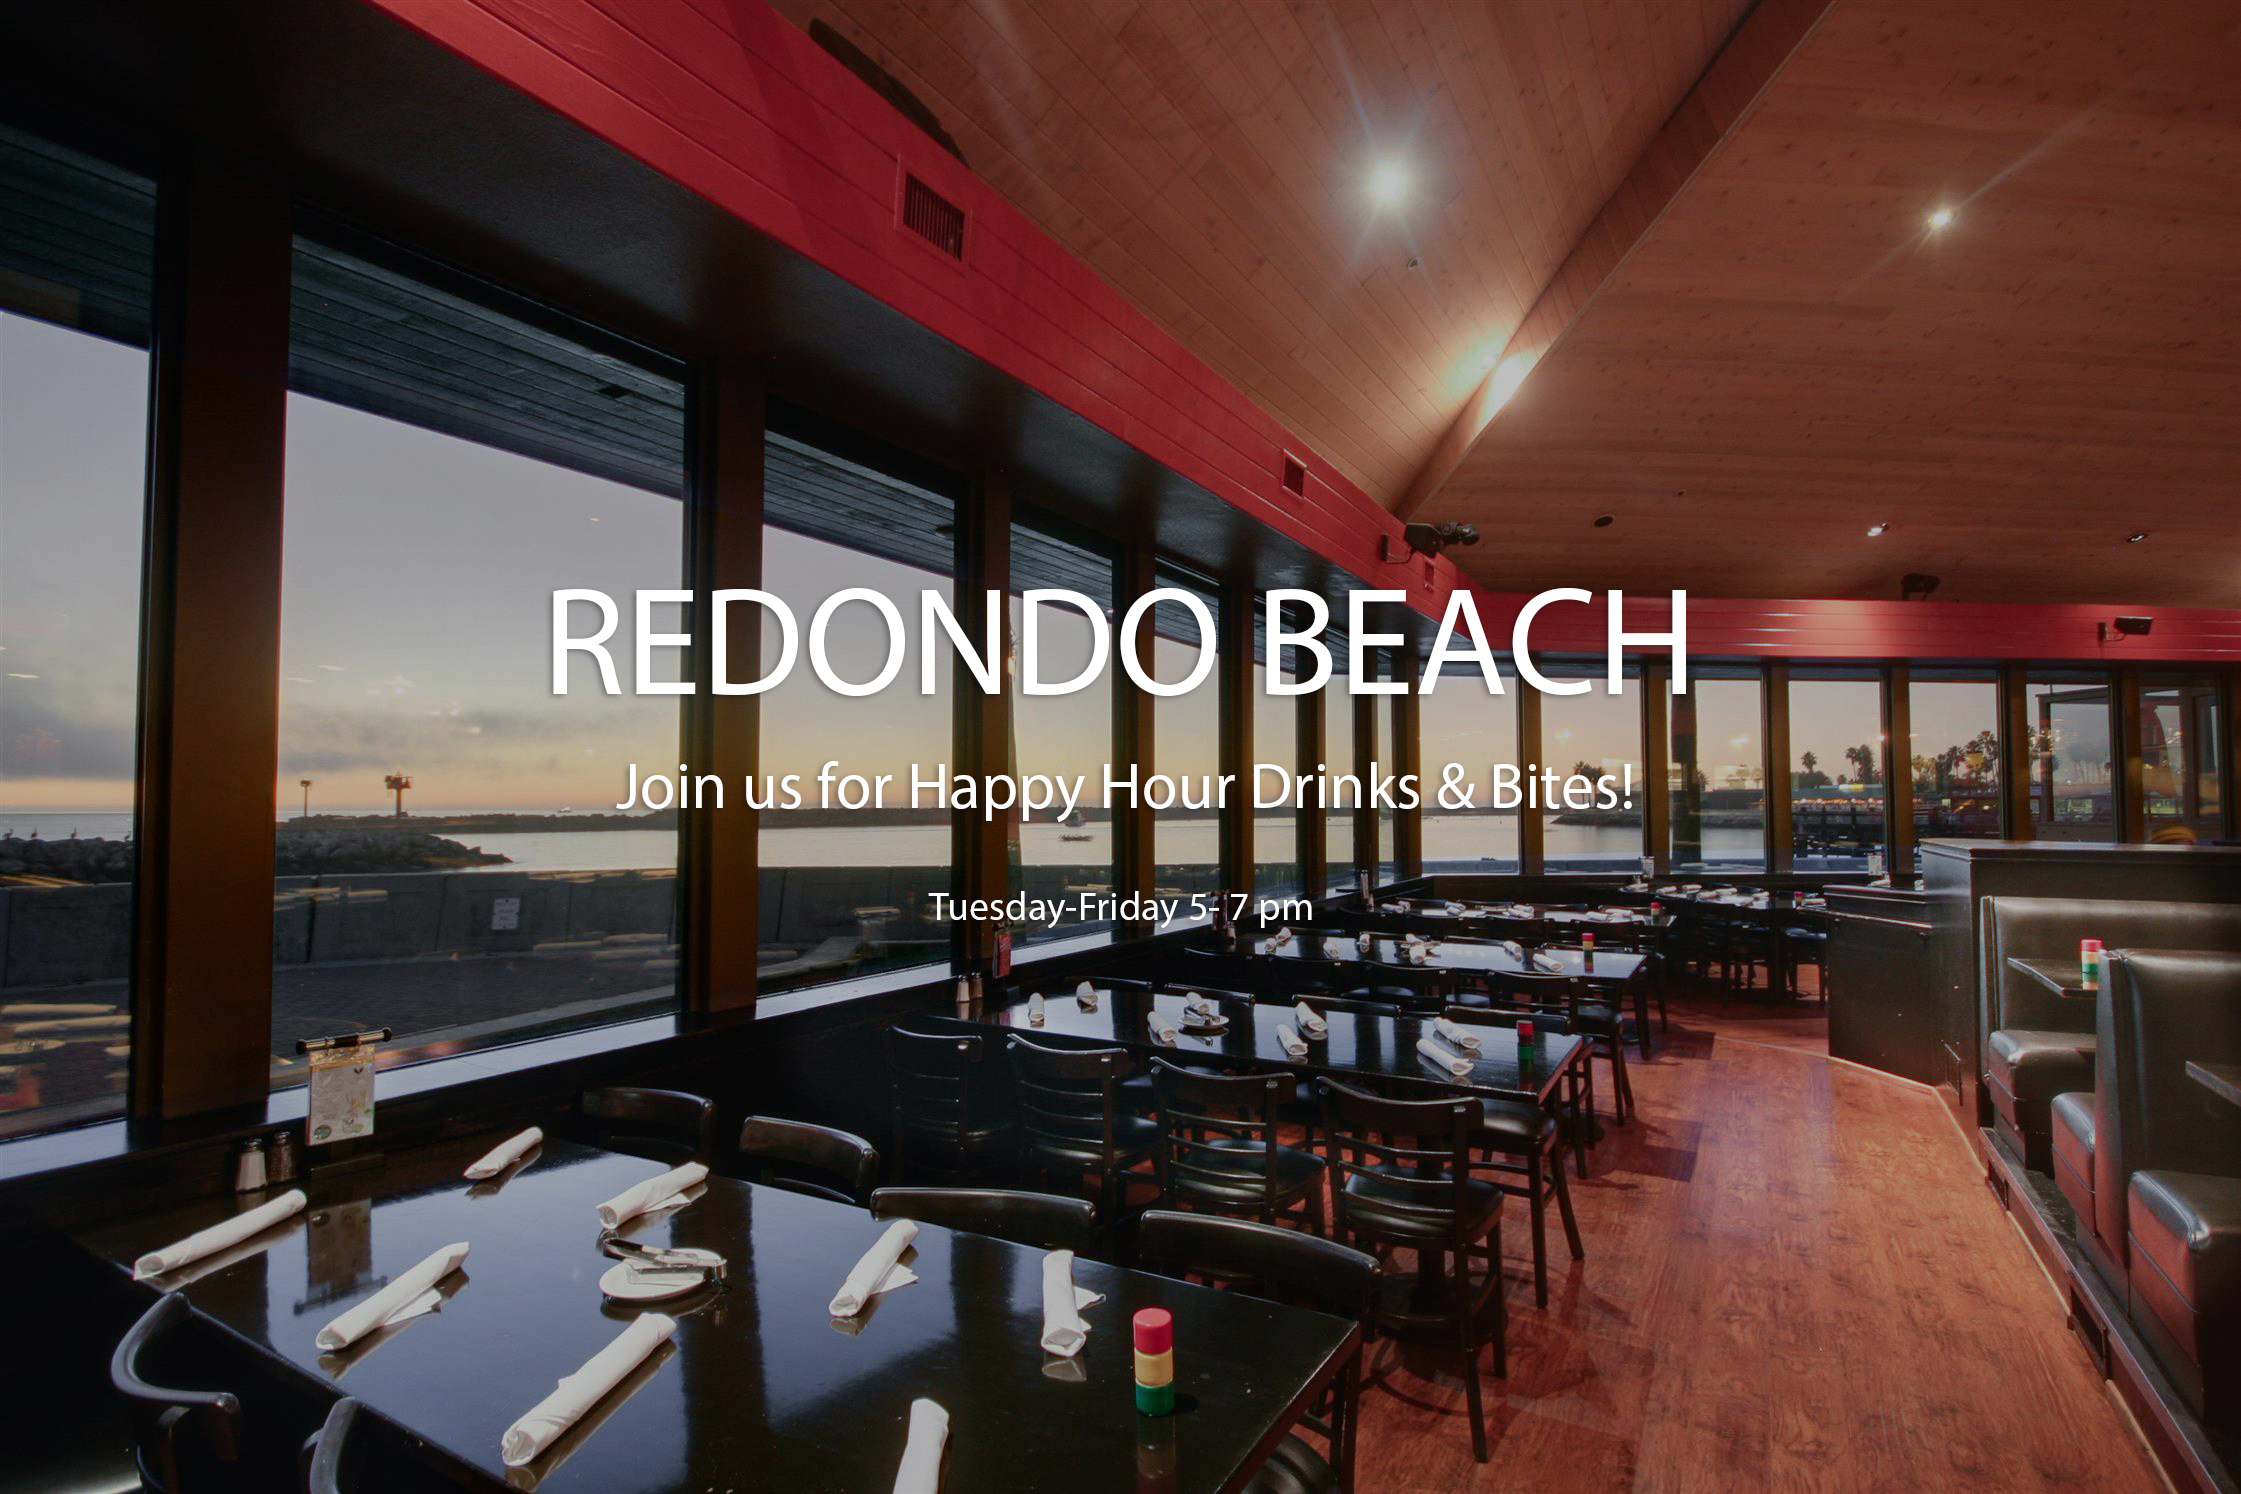 REDONDO BEACH Join us during the week for Happy Hour Drinks & Bites!  Tuesday-Friday 5- 7 pm